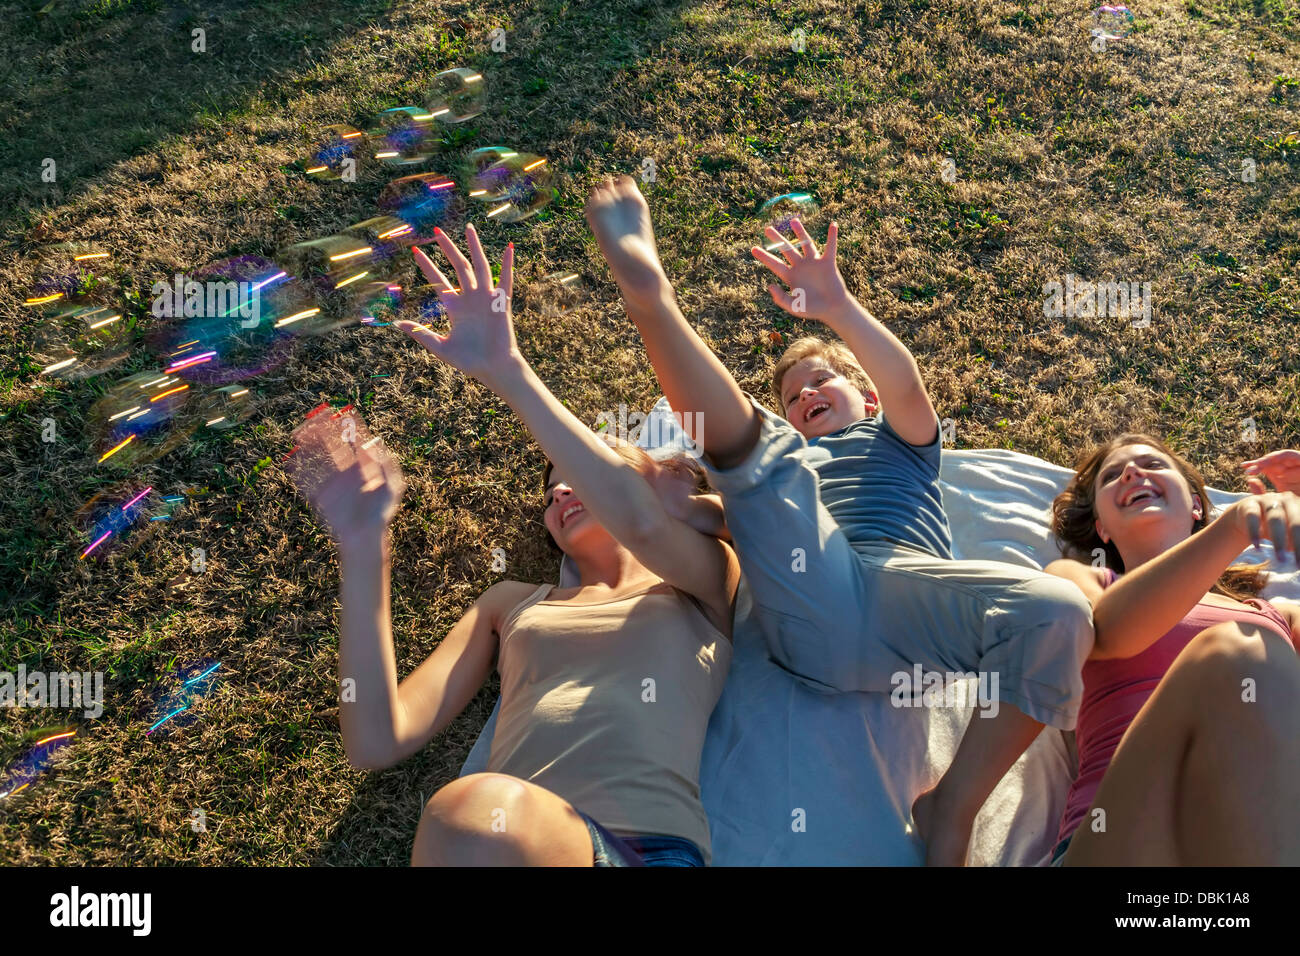 Persons In Garden Playing With Soap Bubbles, Croatia, Slavonia, Europe - Stock Image